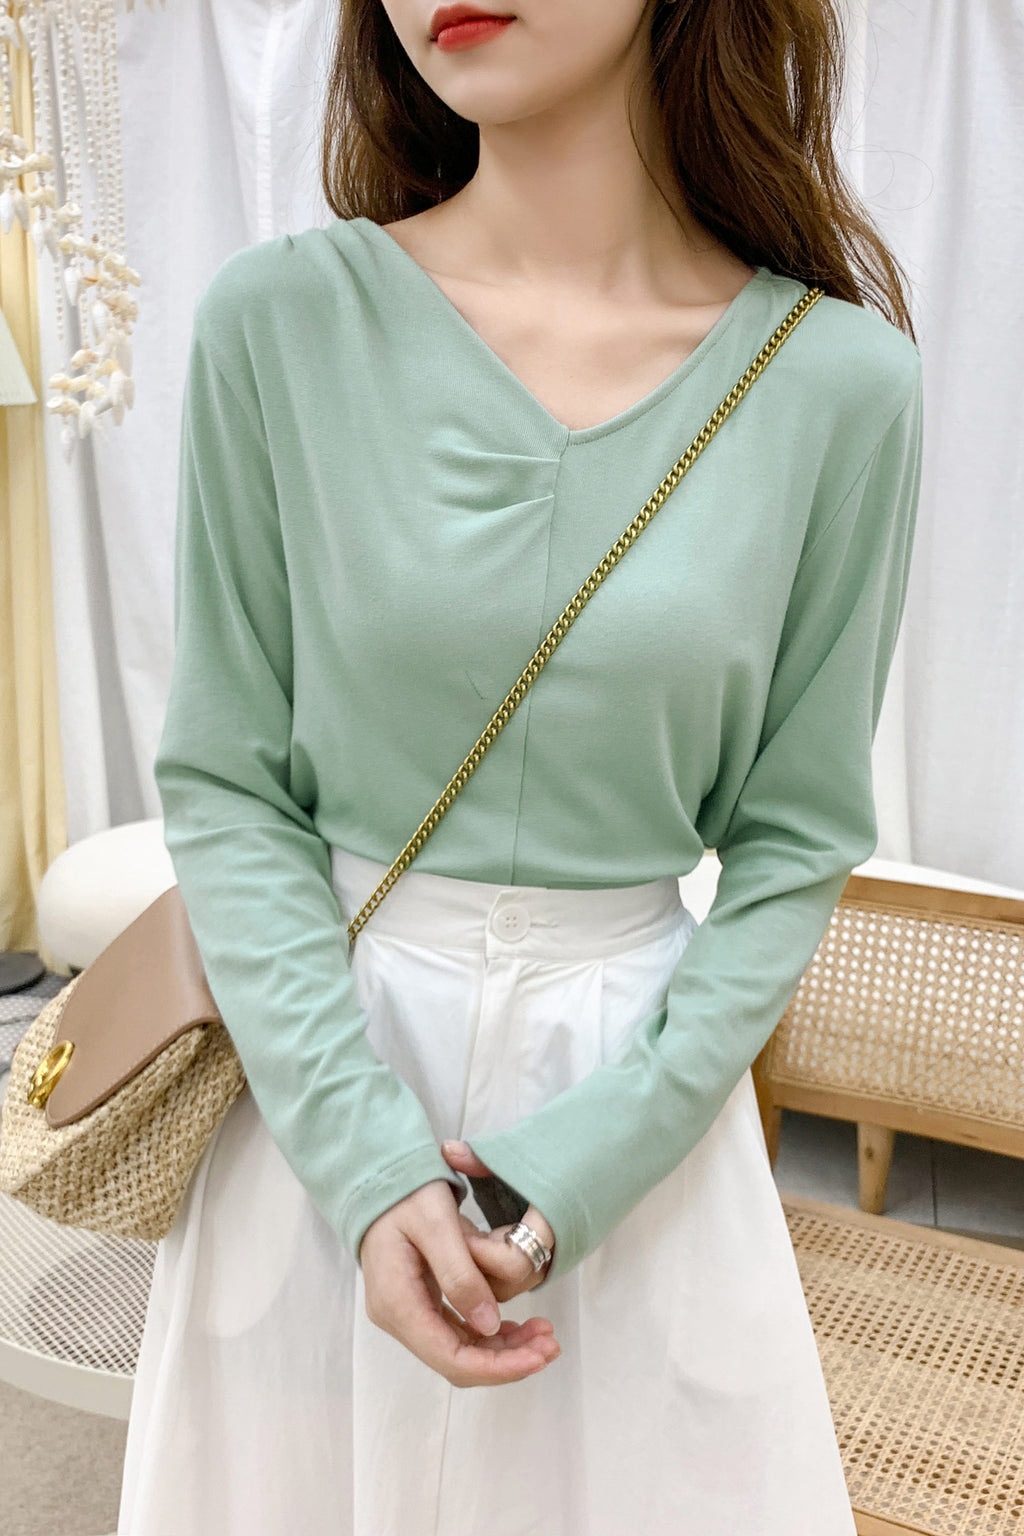 V-Neck Avocado Green T-shirt Top - 7GEGE